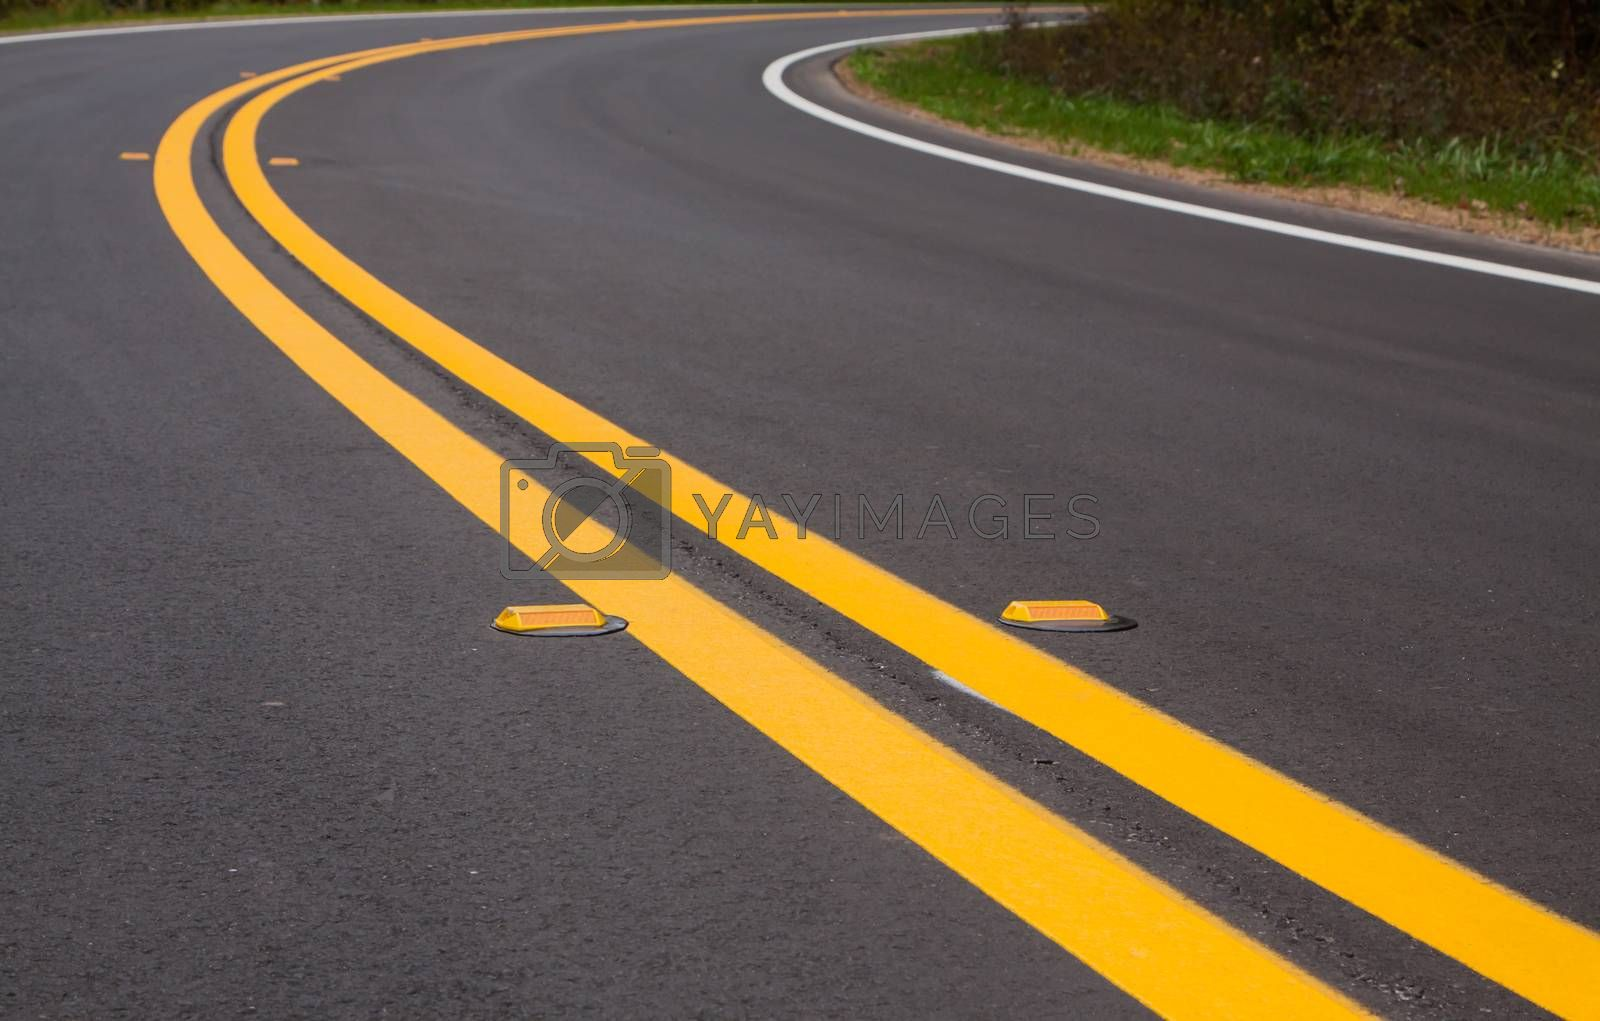 Roadway devider lines and markers by TravisPhotoWorks